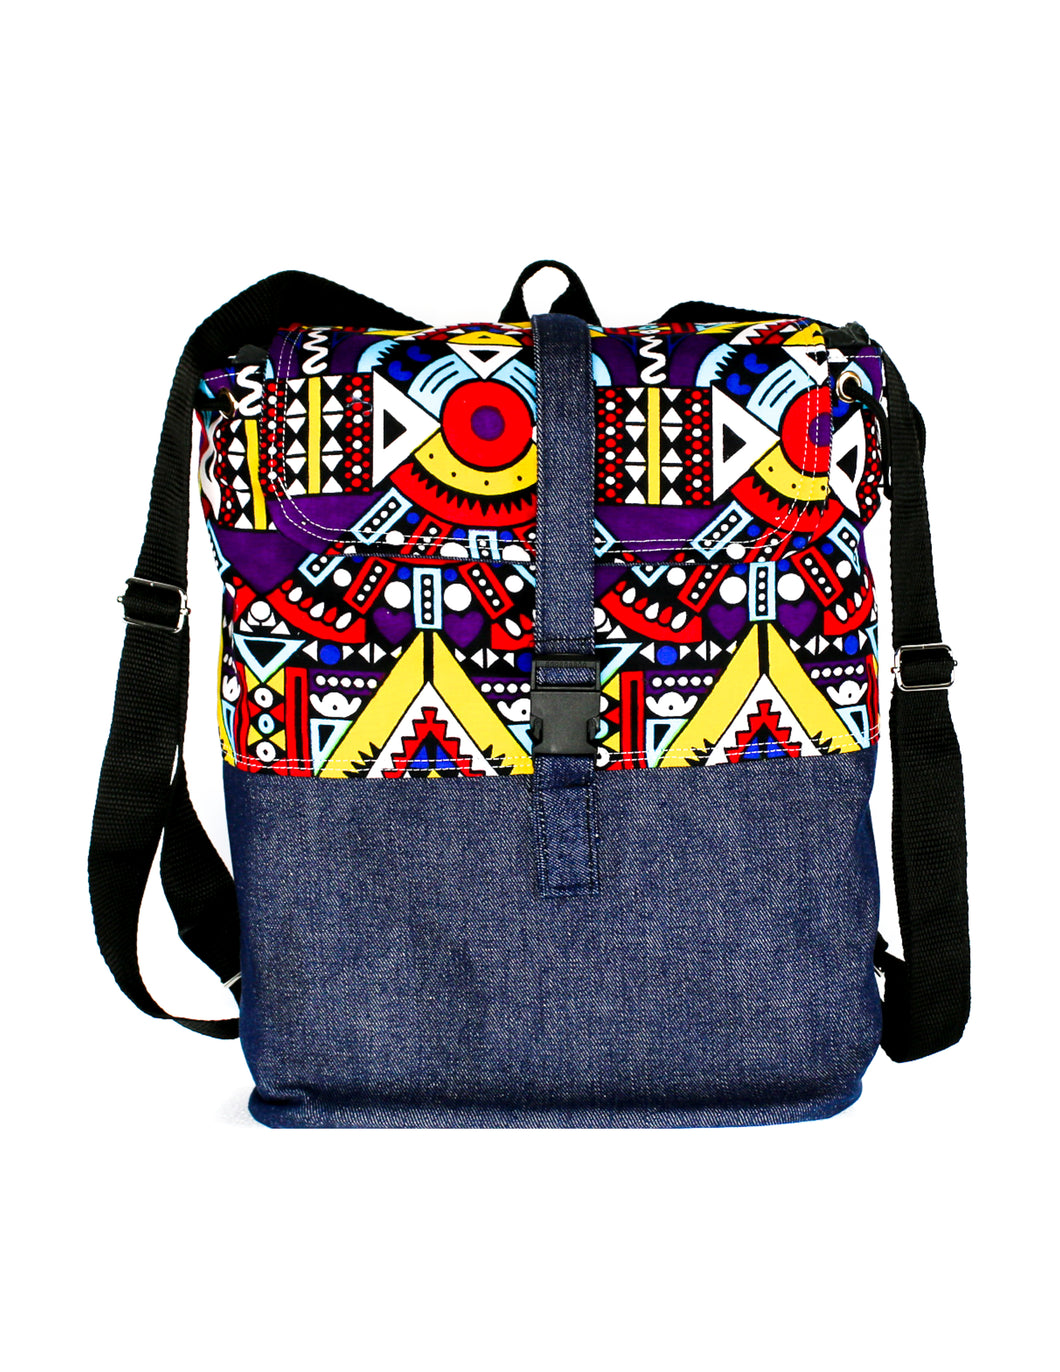 Vibrantly Colored Kitenge Patterned Top with Denim Base